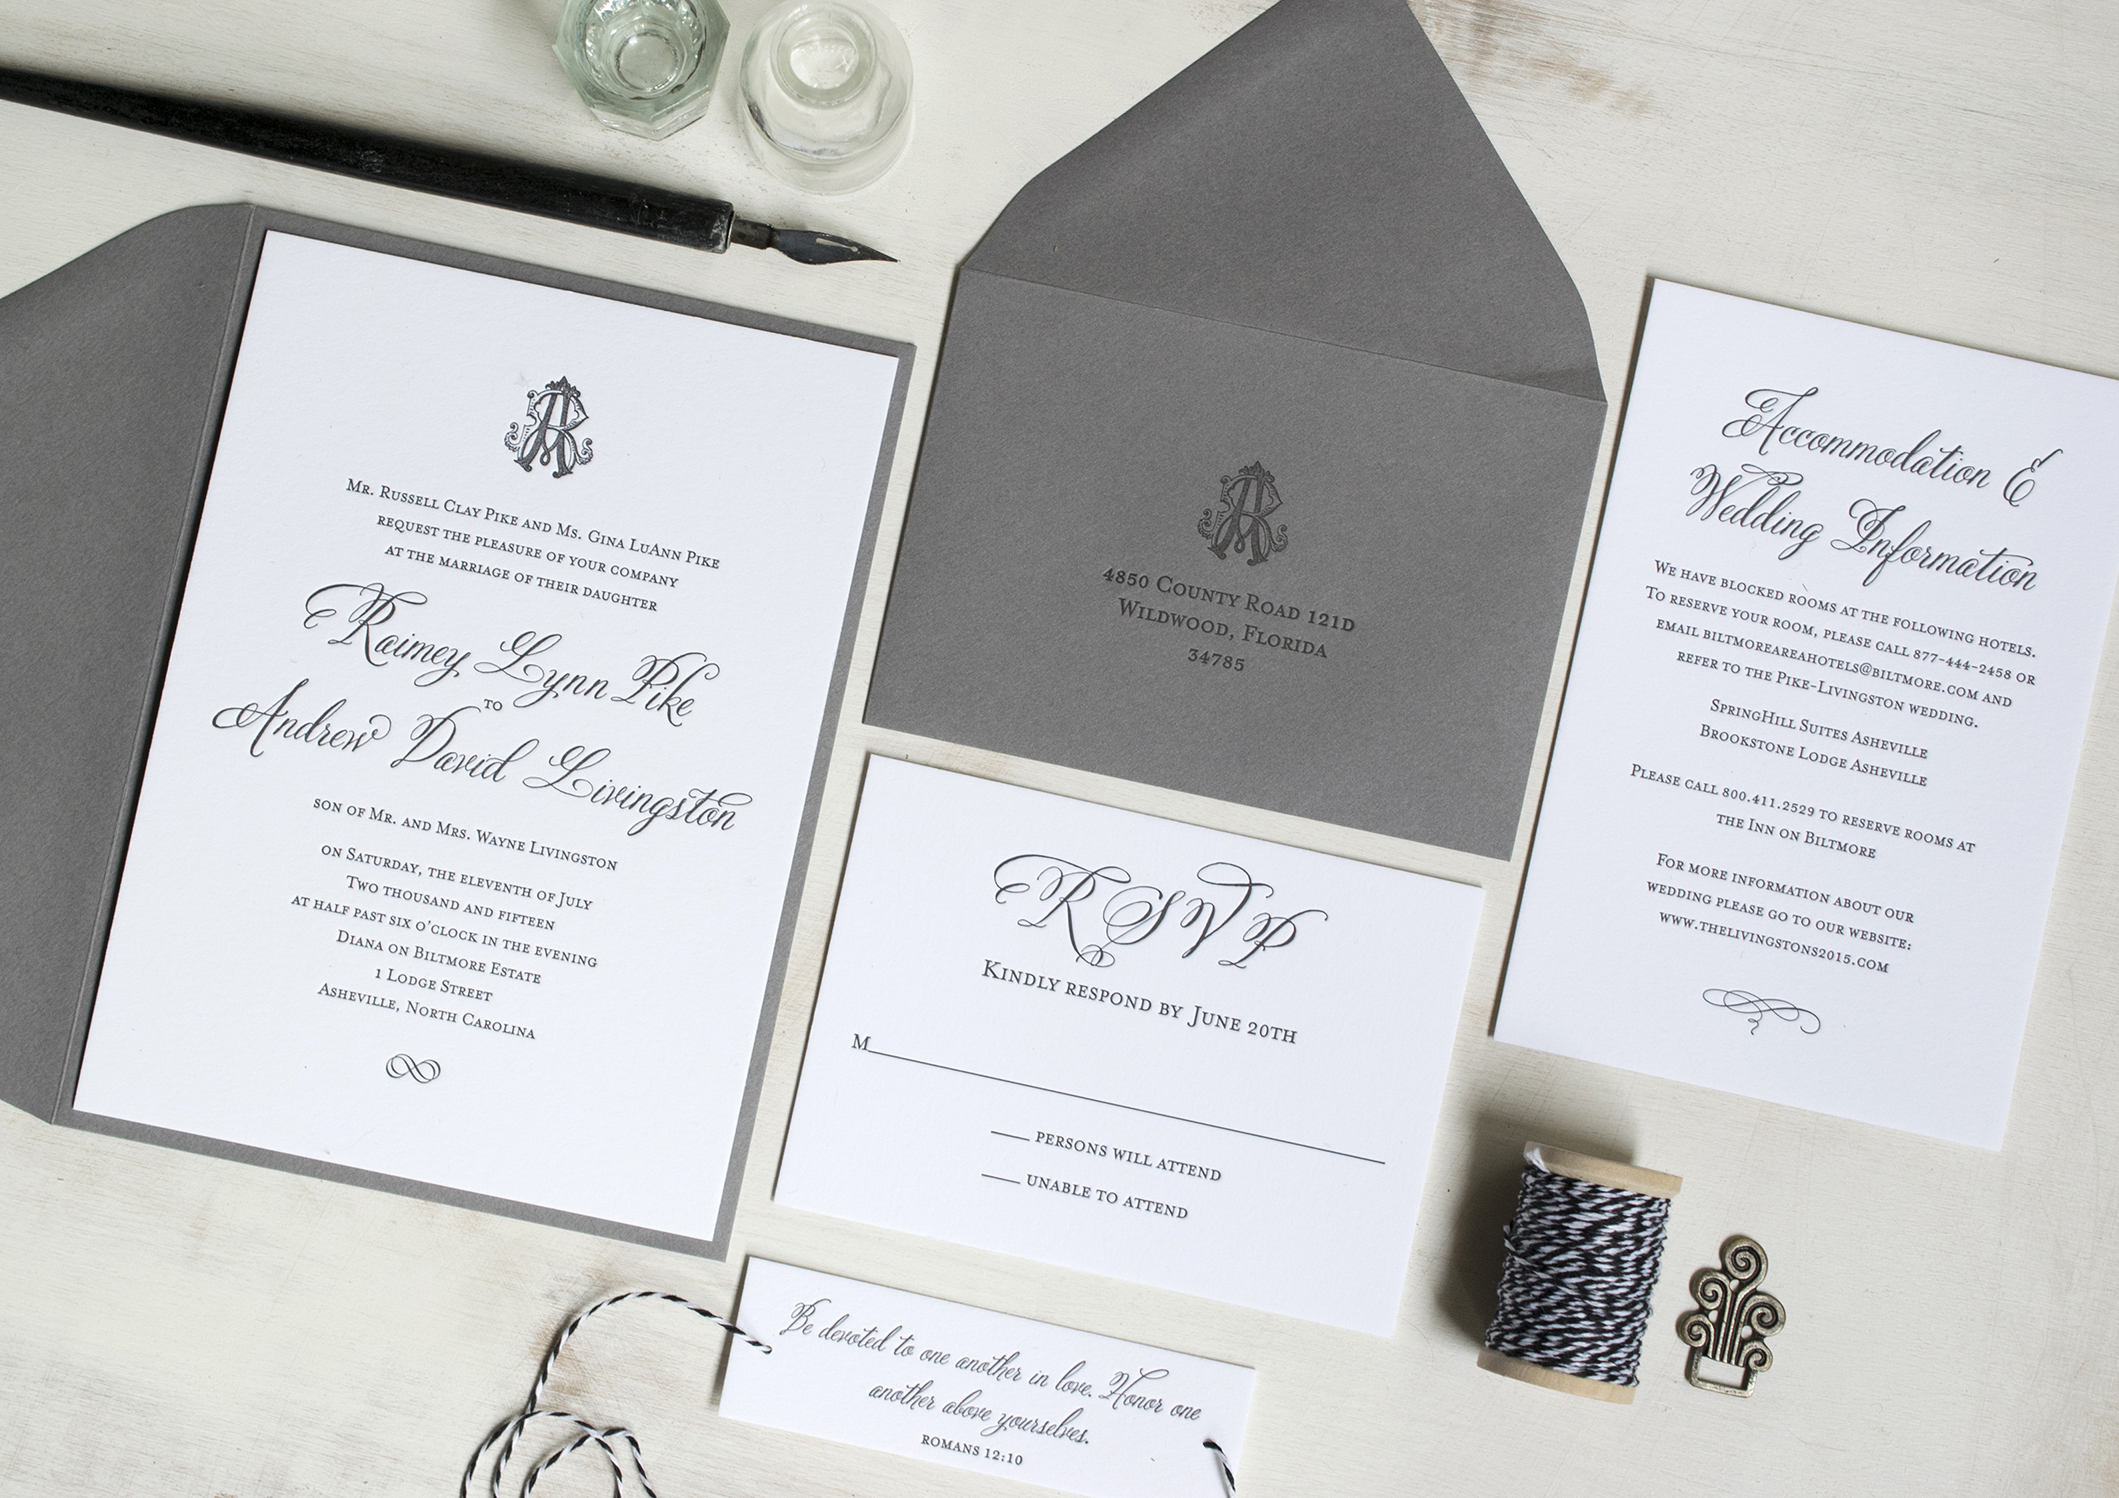 Raimey & Andrew: Letterpress printed wedding invitation suite. Designed at 7 Ton Co.